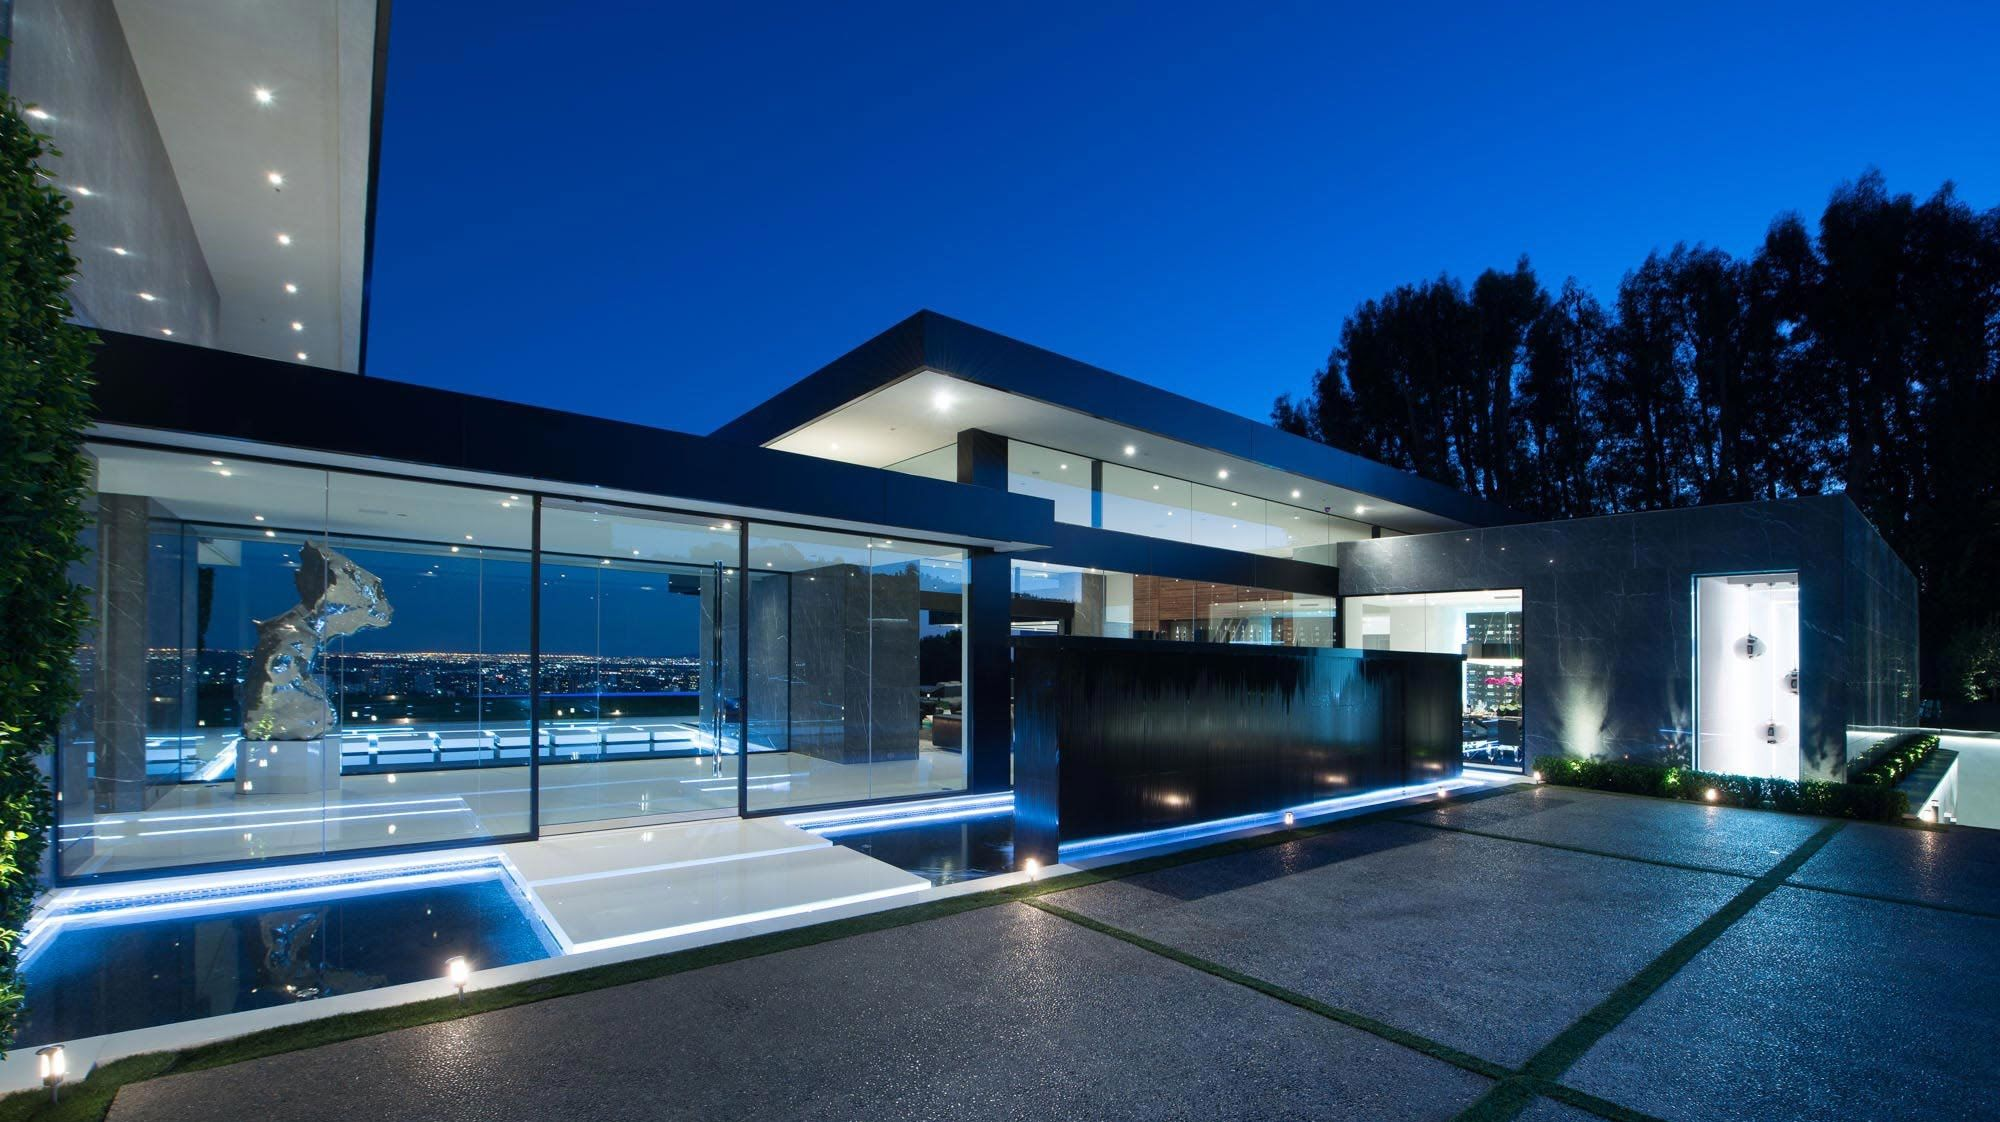 Schon Stunning Contemporary Luxury Residence In Bel Air, CA, USA (by Paul McCl.